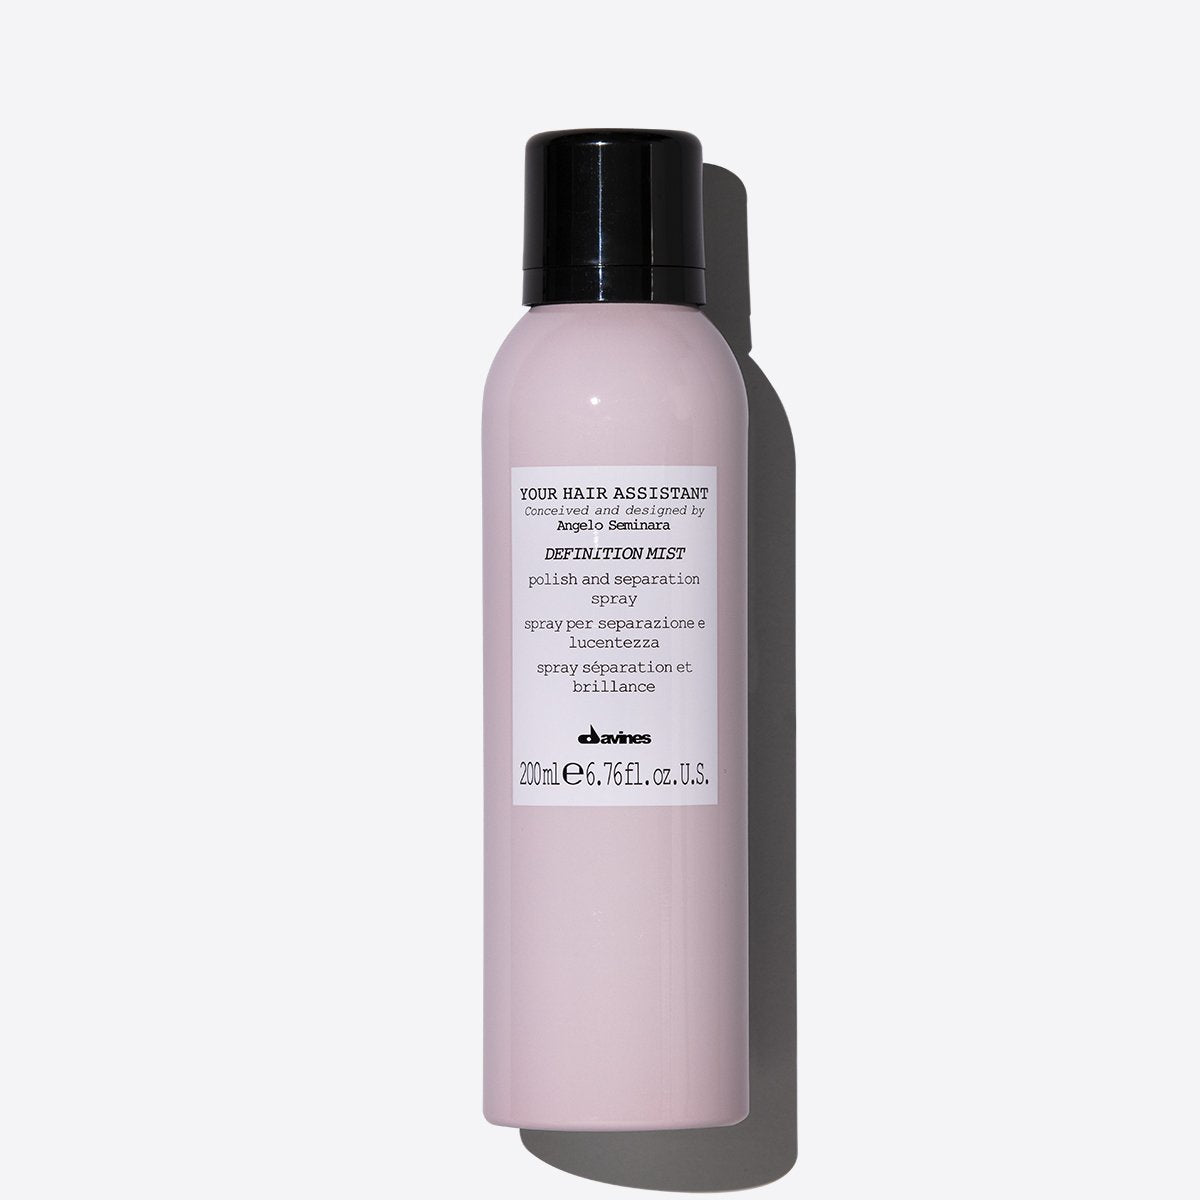 Your Hair Assistant Definition Mist 1  200 ml / 6,76 fl.oz.Davines